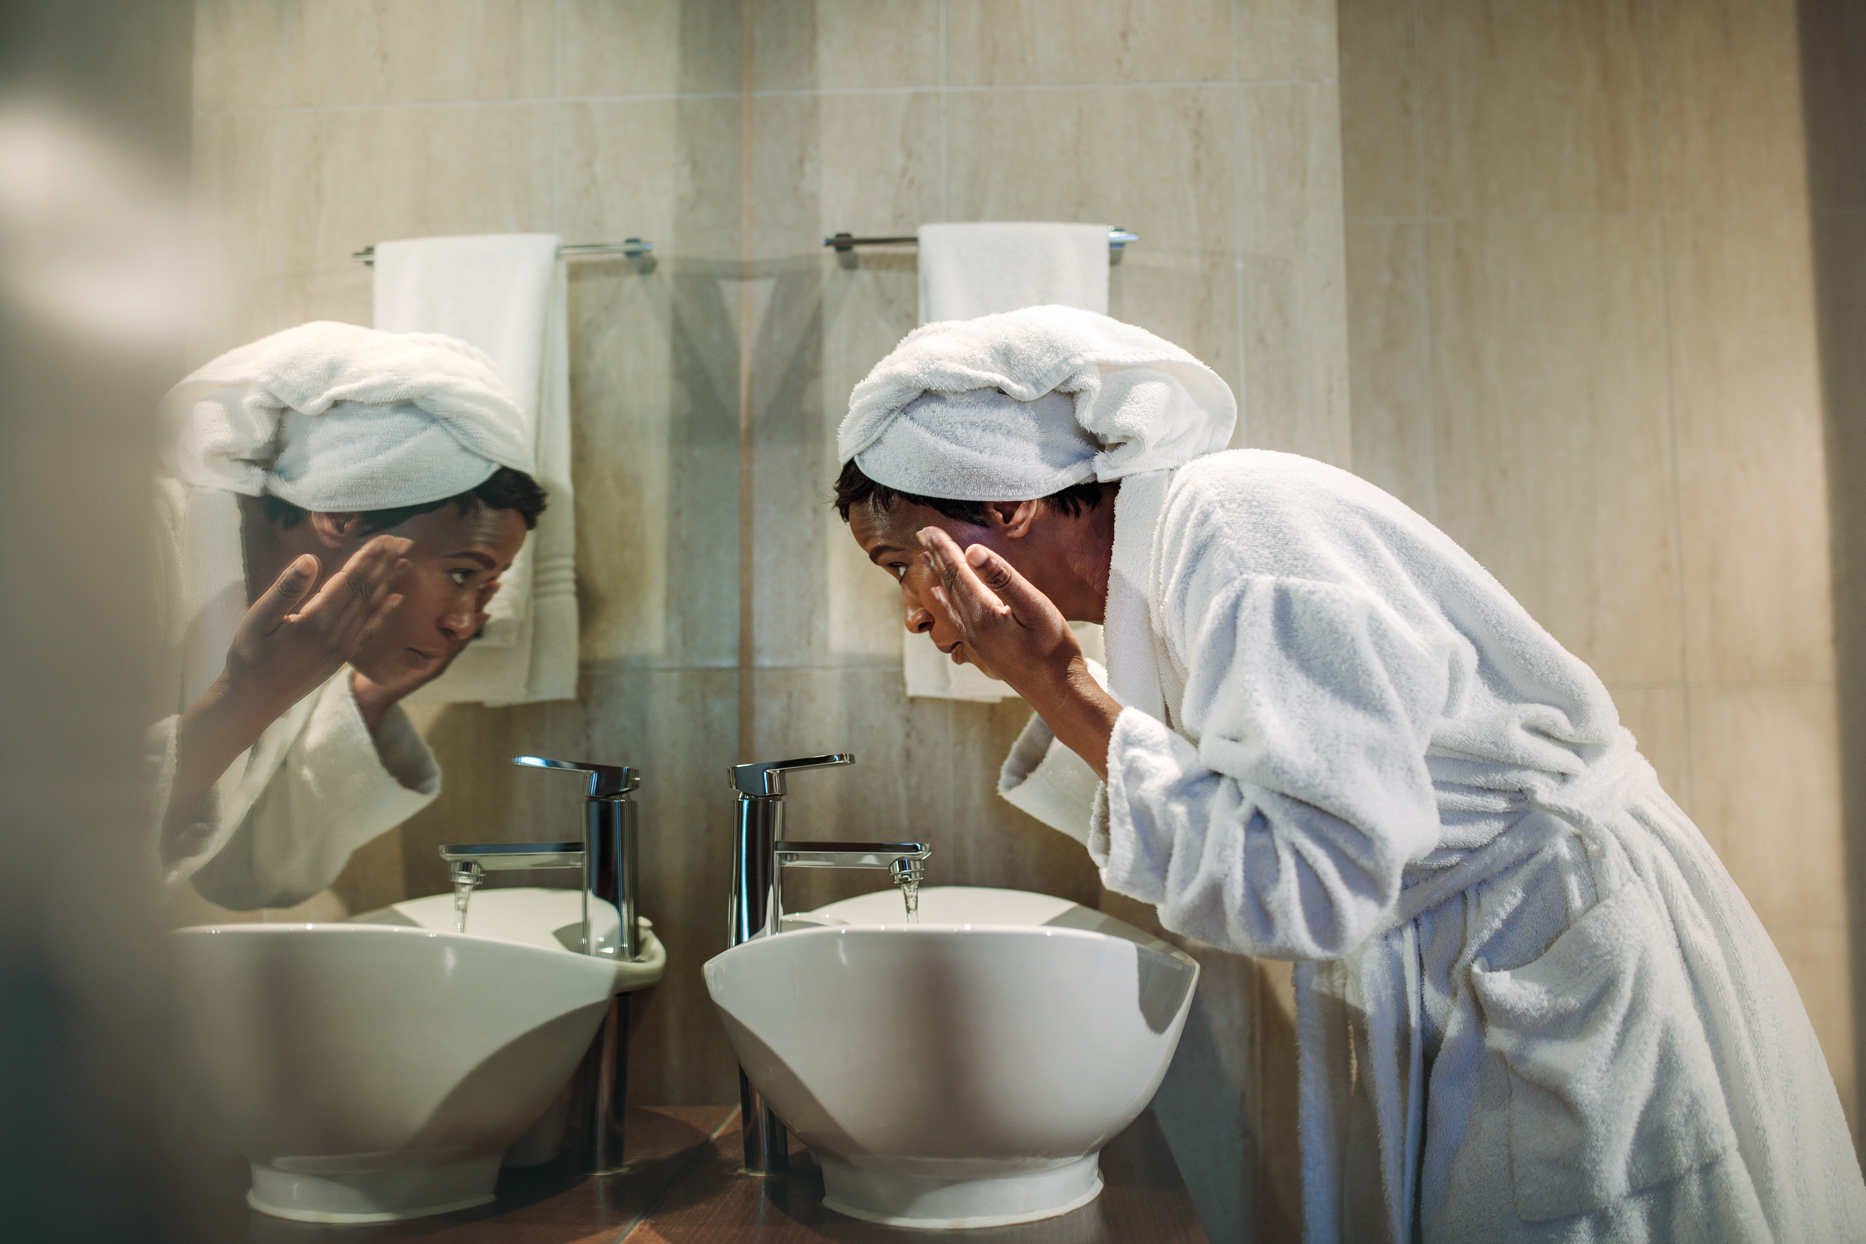 woman wearing towel and robe washing face